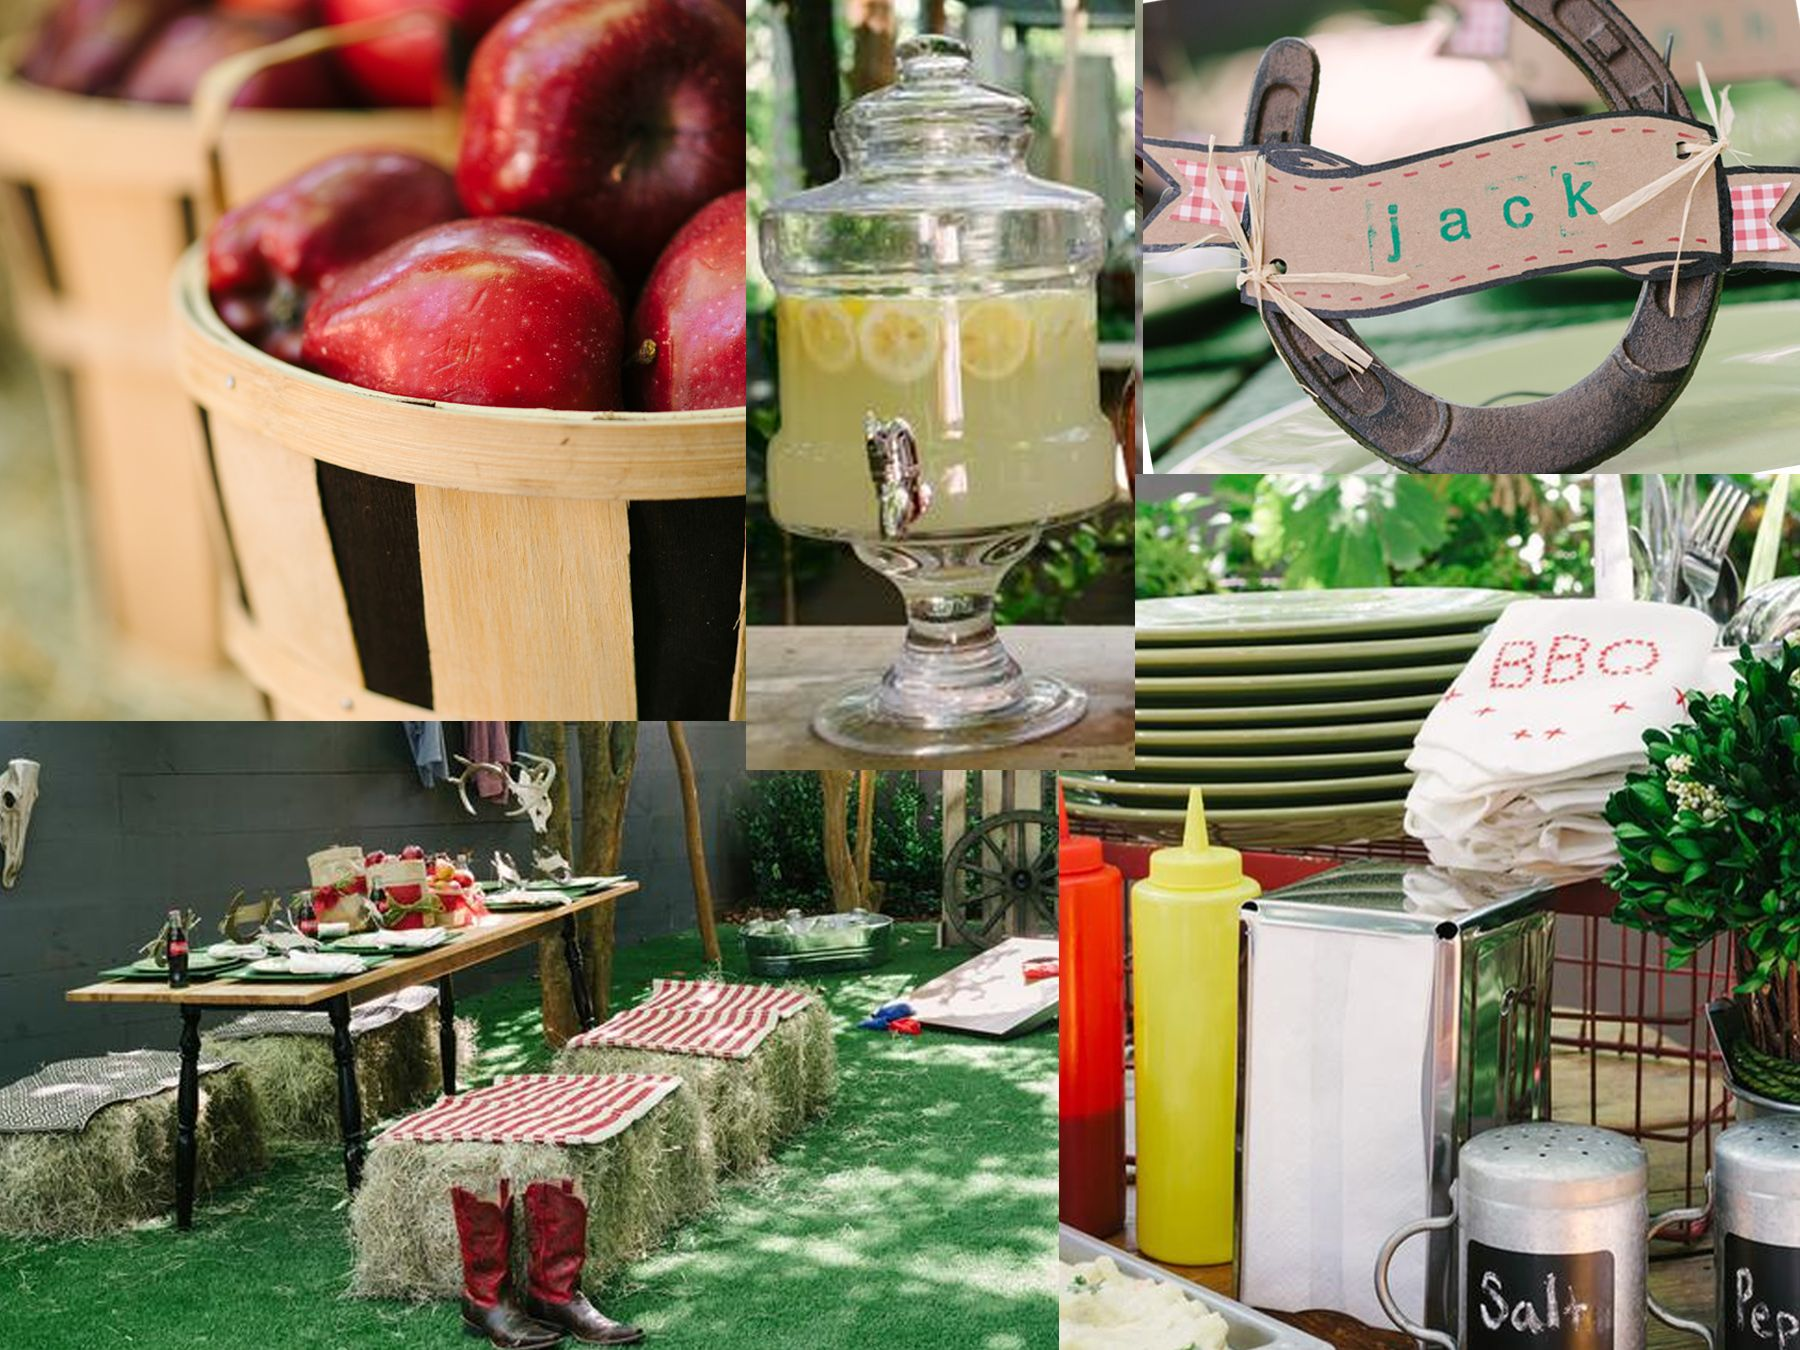 Backyard Barbecue Inspiration U003eu003e Http://blog.diynetwork.com/maderemade Design Inspirations